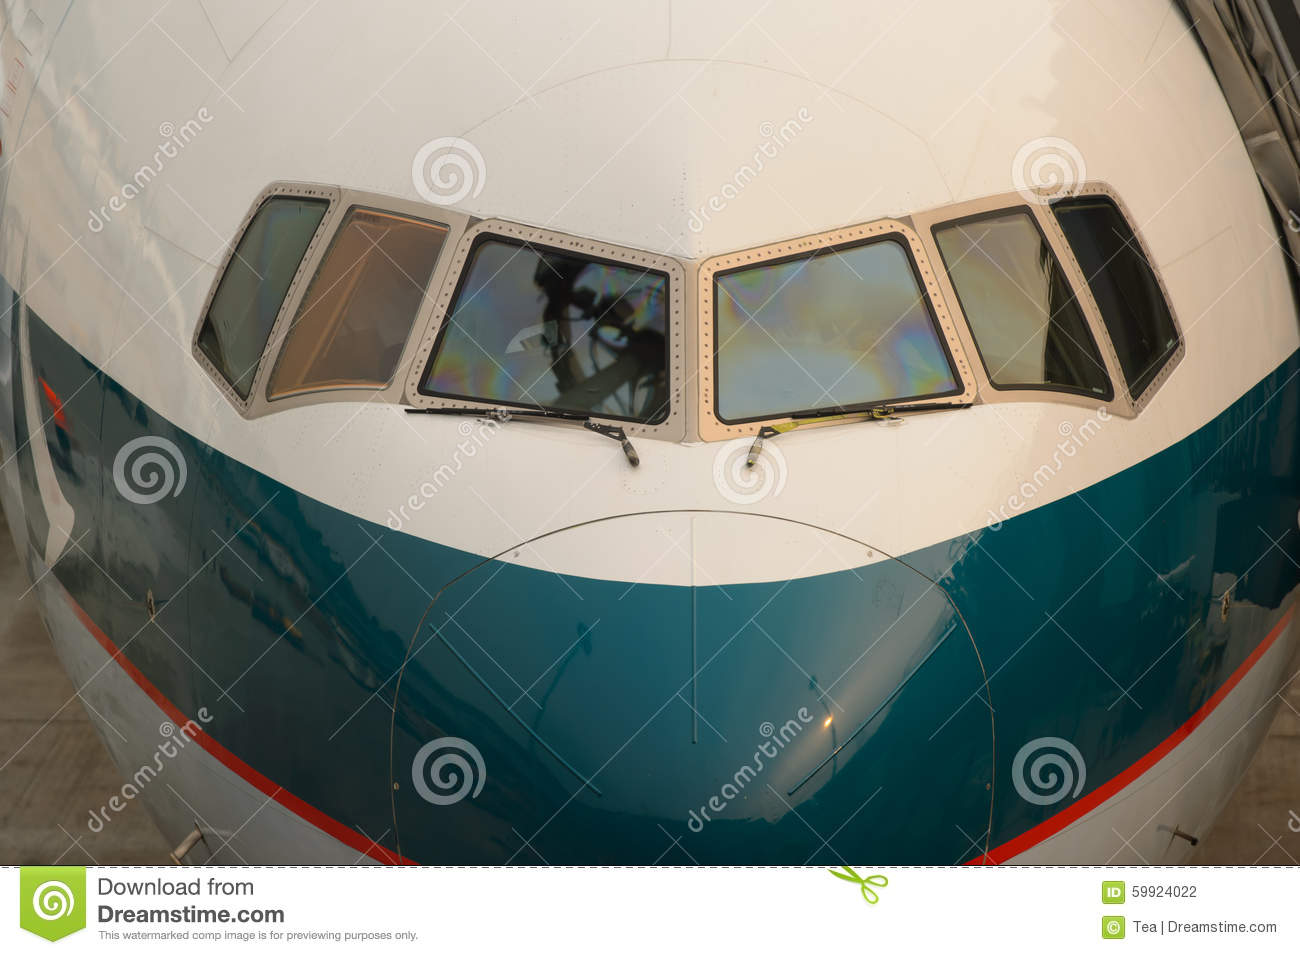 Cathay pacific aircraft near boarding bridge editorial photography image 59924022 - Cathay pacific head office ...